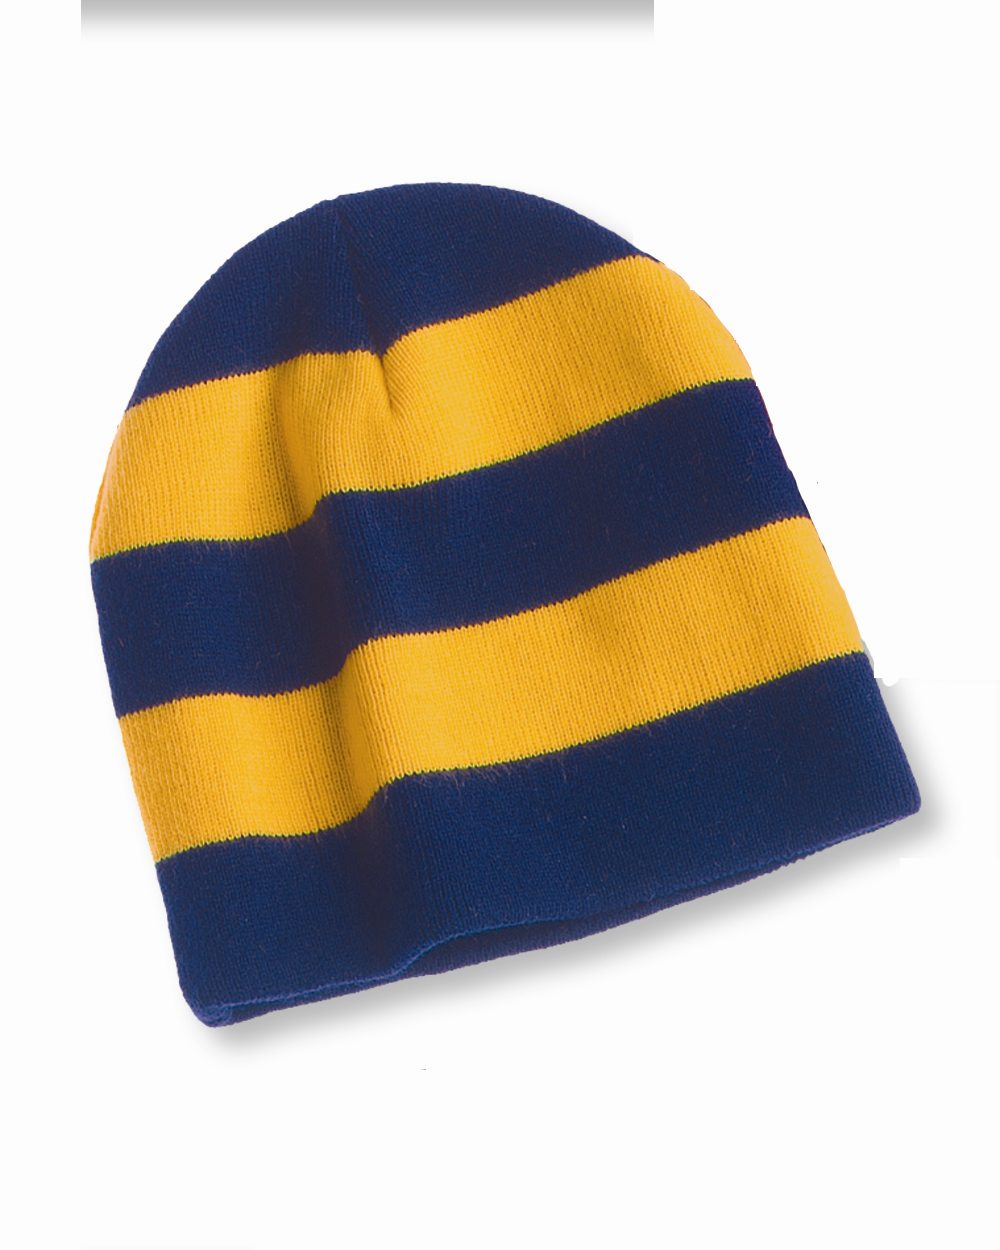 Sportsman Cap SP01 Rugby Striped Knit Beanie